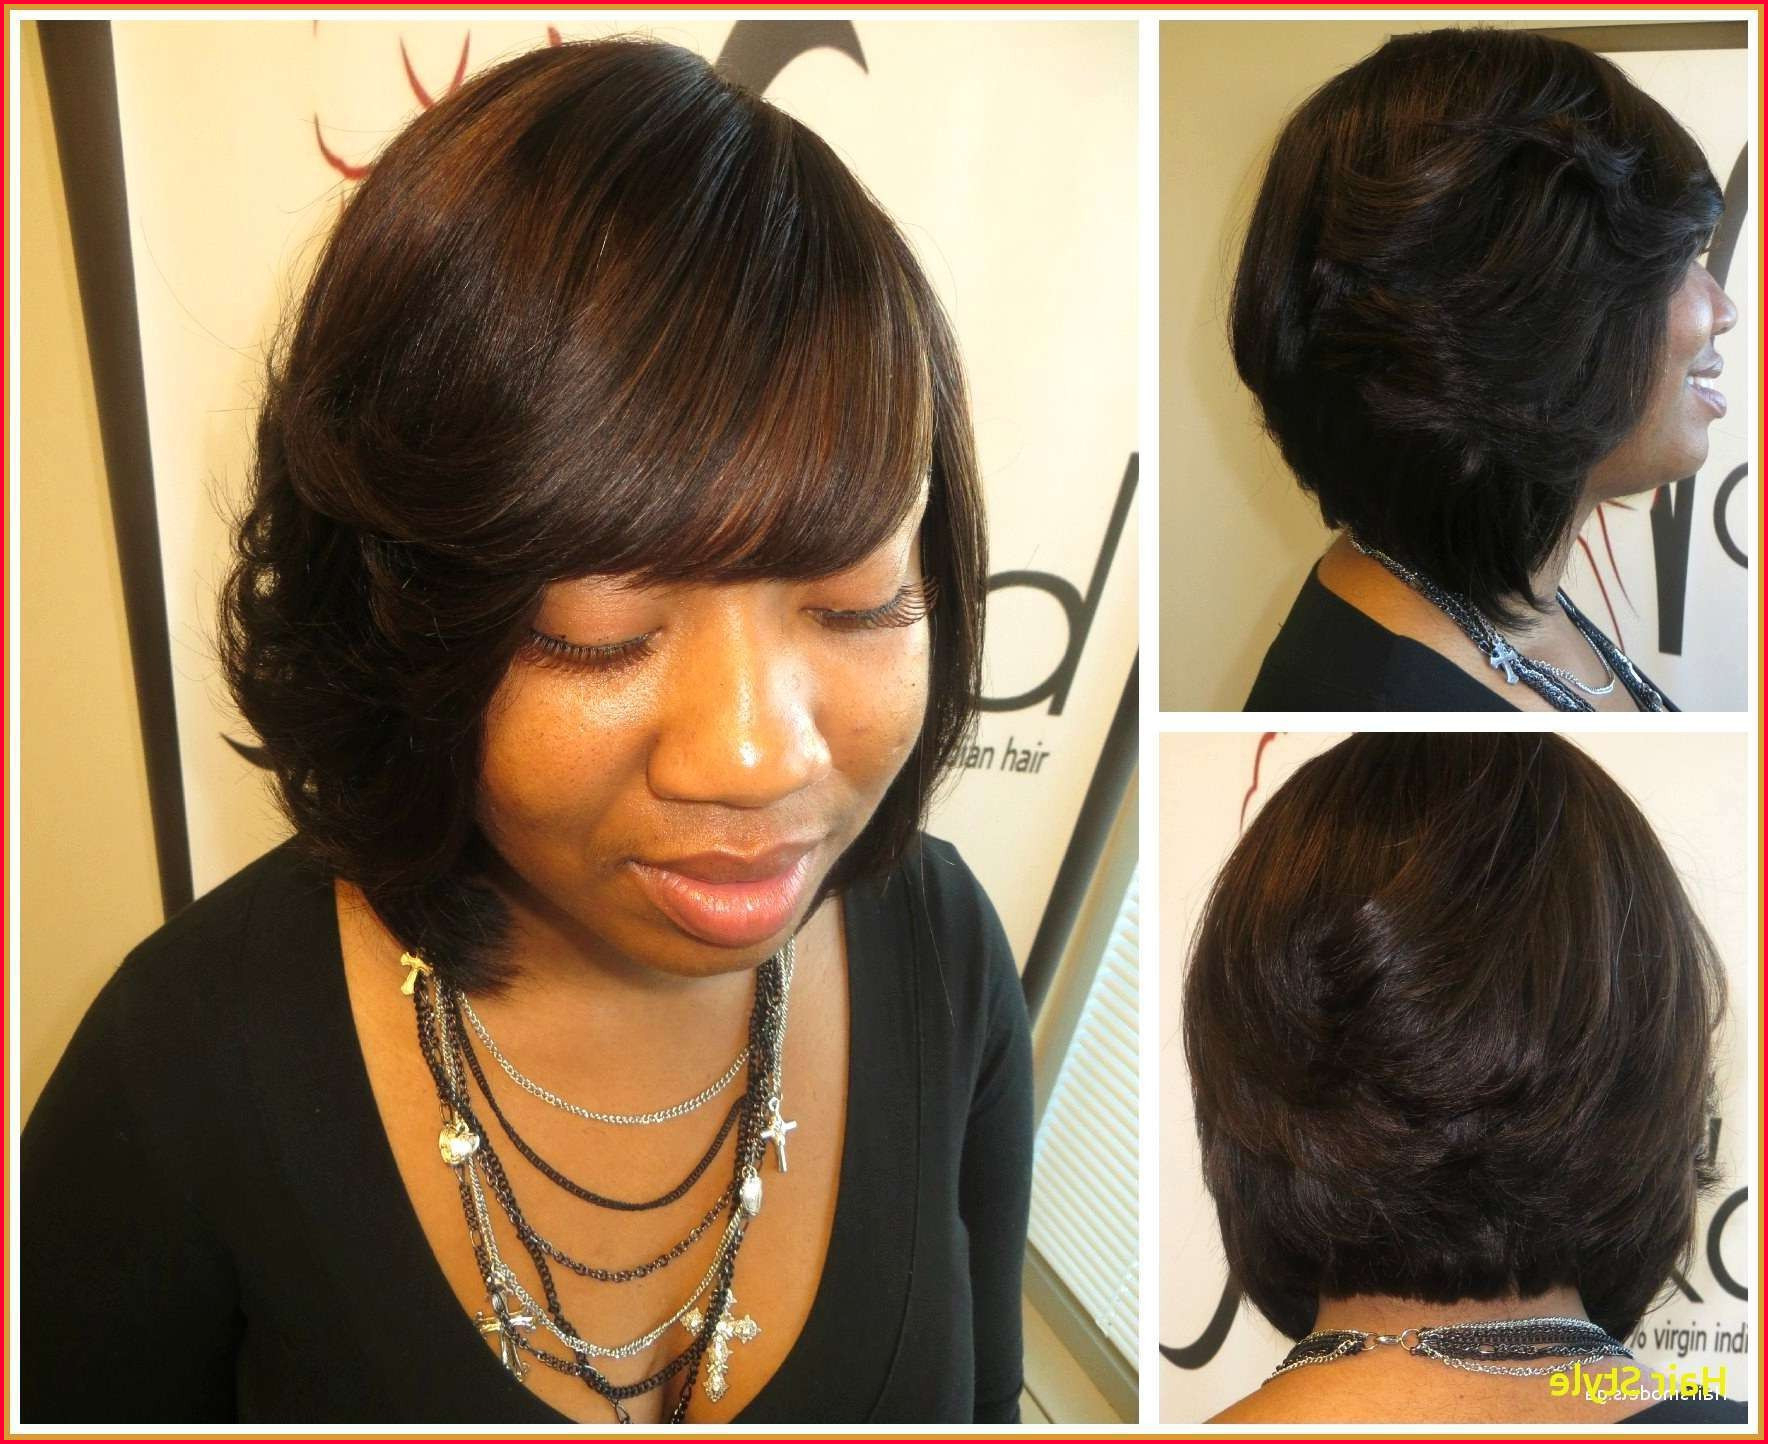 Short Layered Bob Hairstyles 7299 Artistic Layered Bob For Recent A Very Short Layered Bob Hairstyles (View 13 of 20)